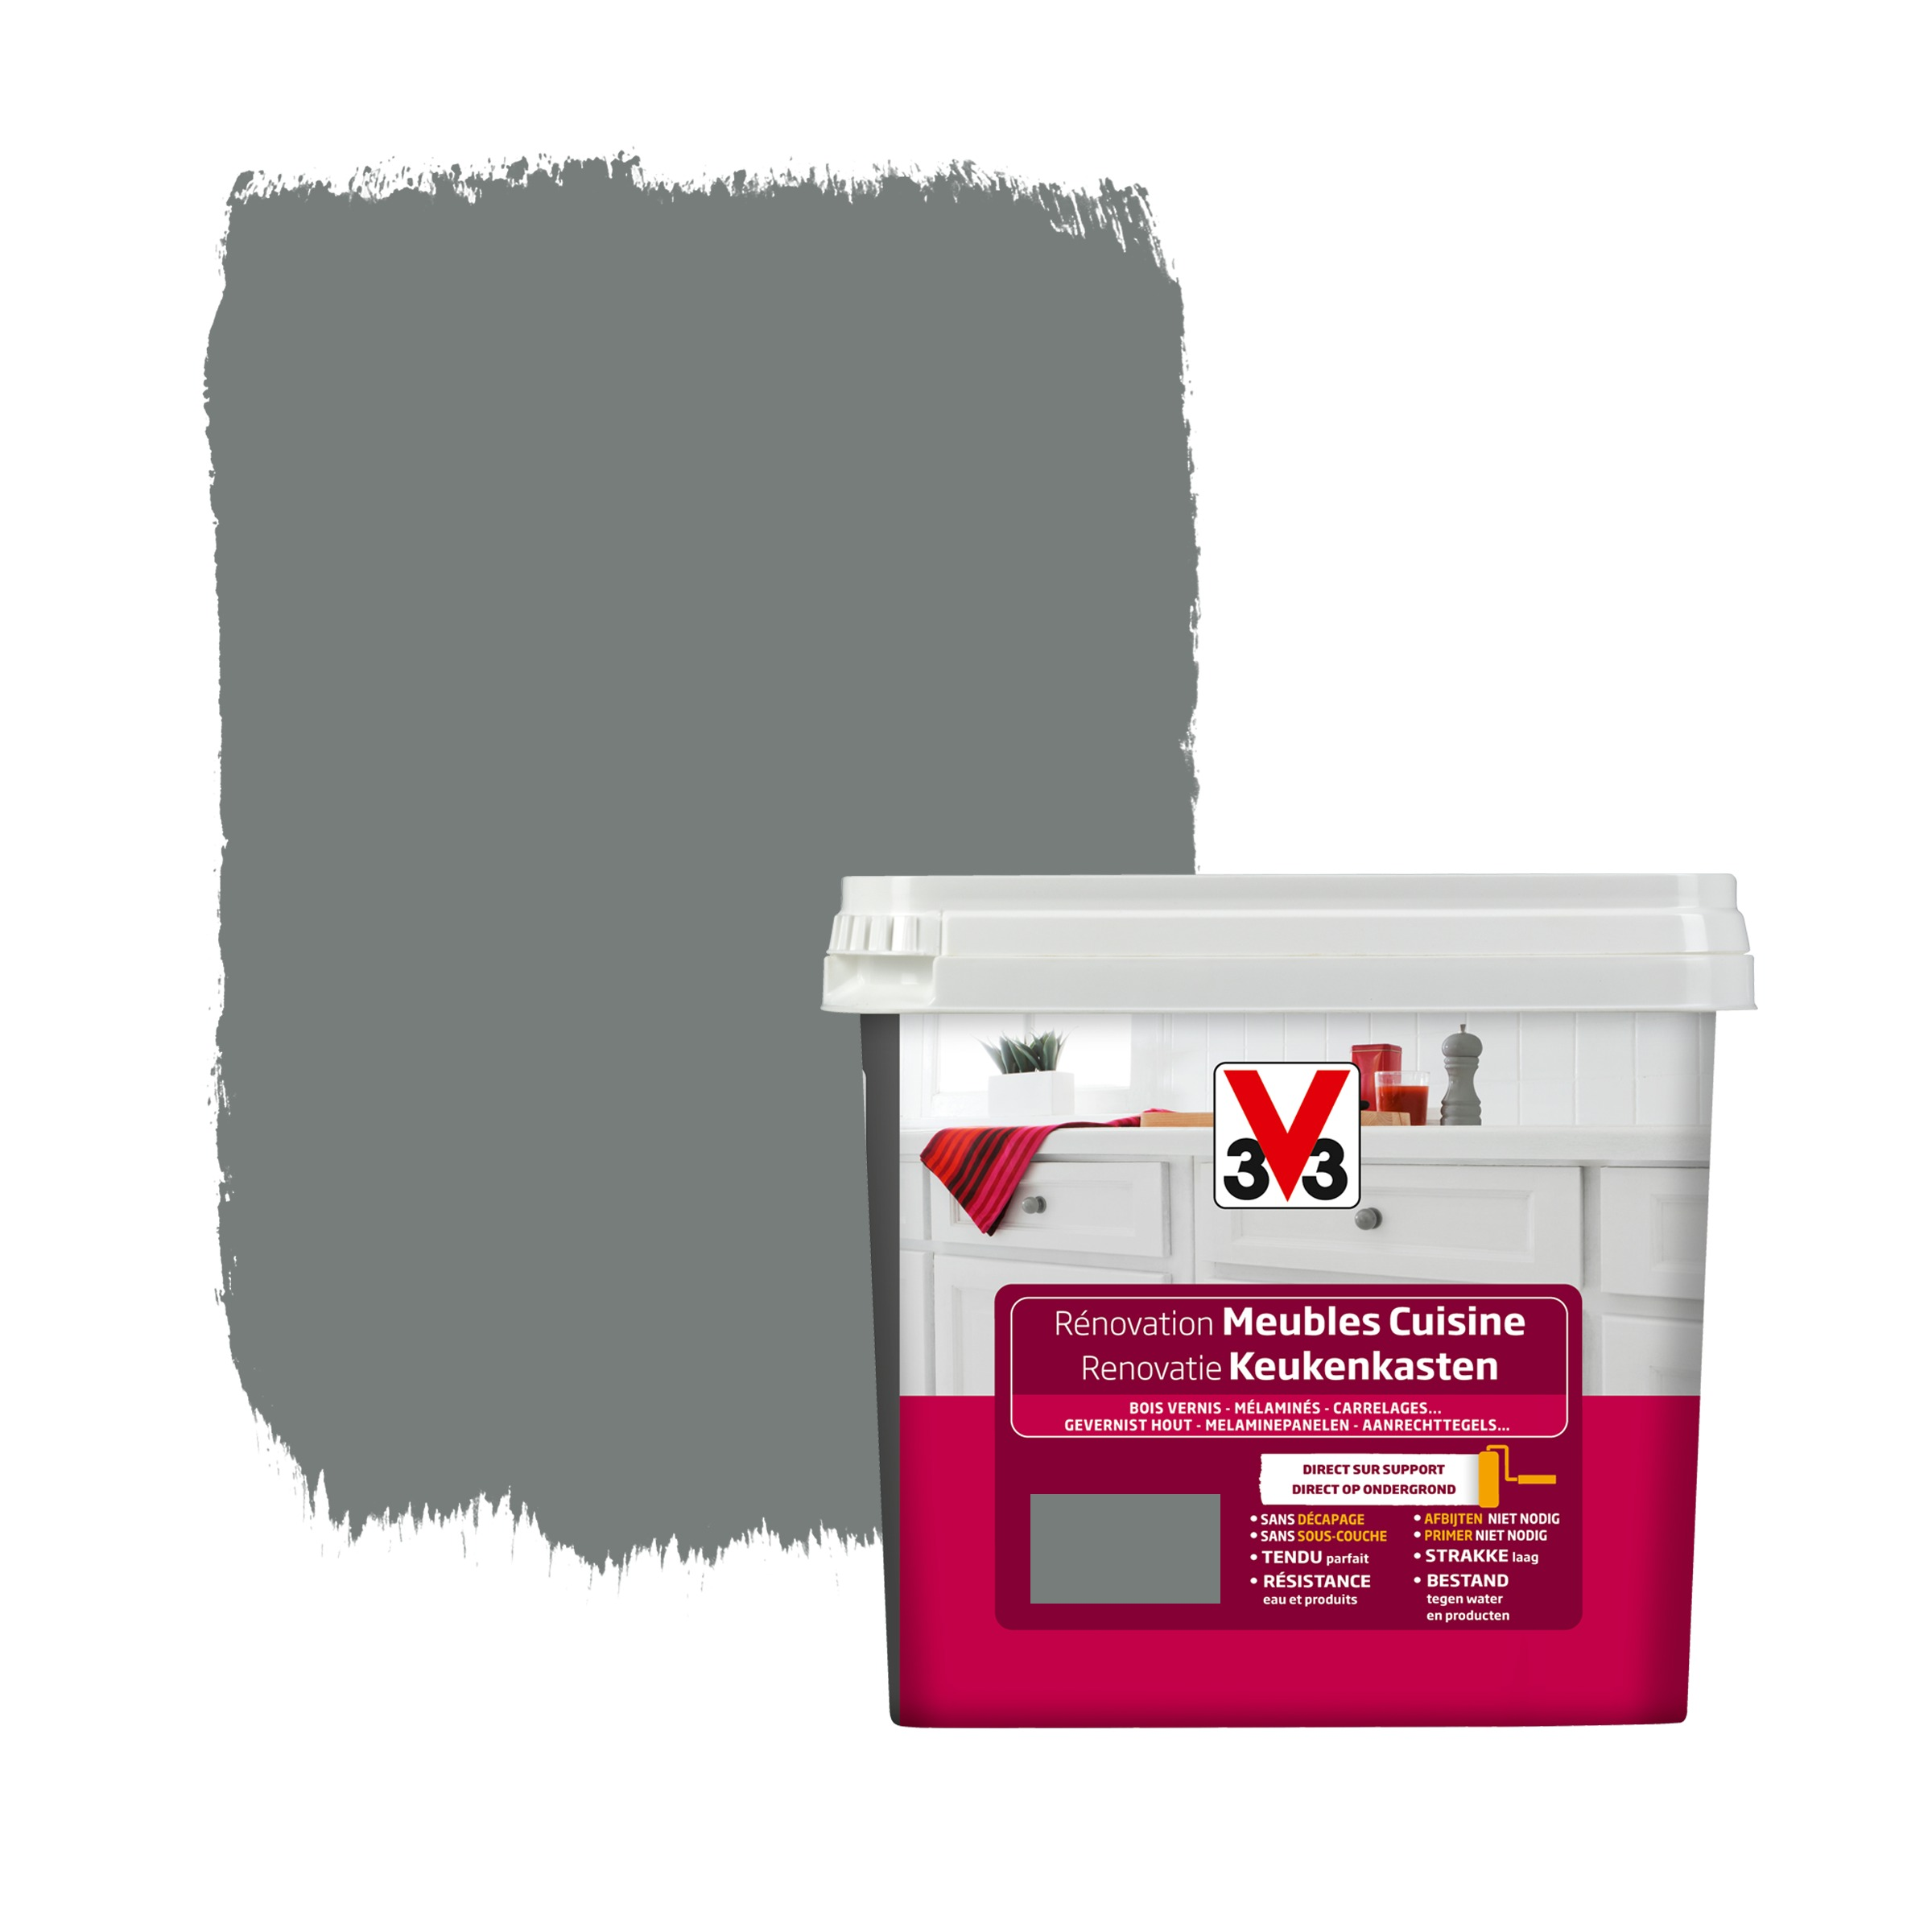 peinture de r novation meubles cuisine v33 satin carbonate 750 ml peintures sp ciales papier ForPeinture De Renovation V